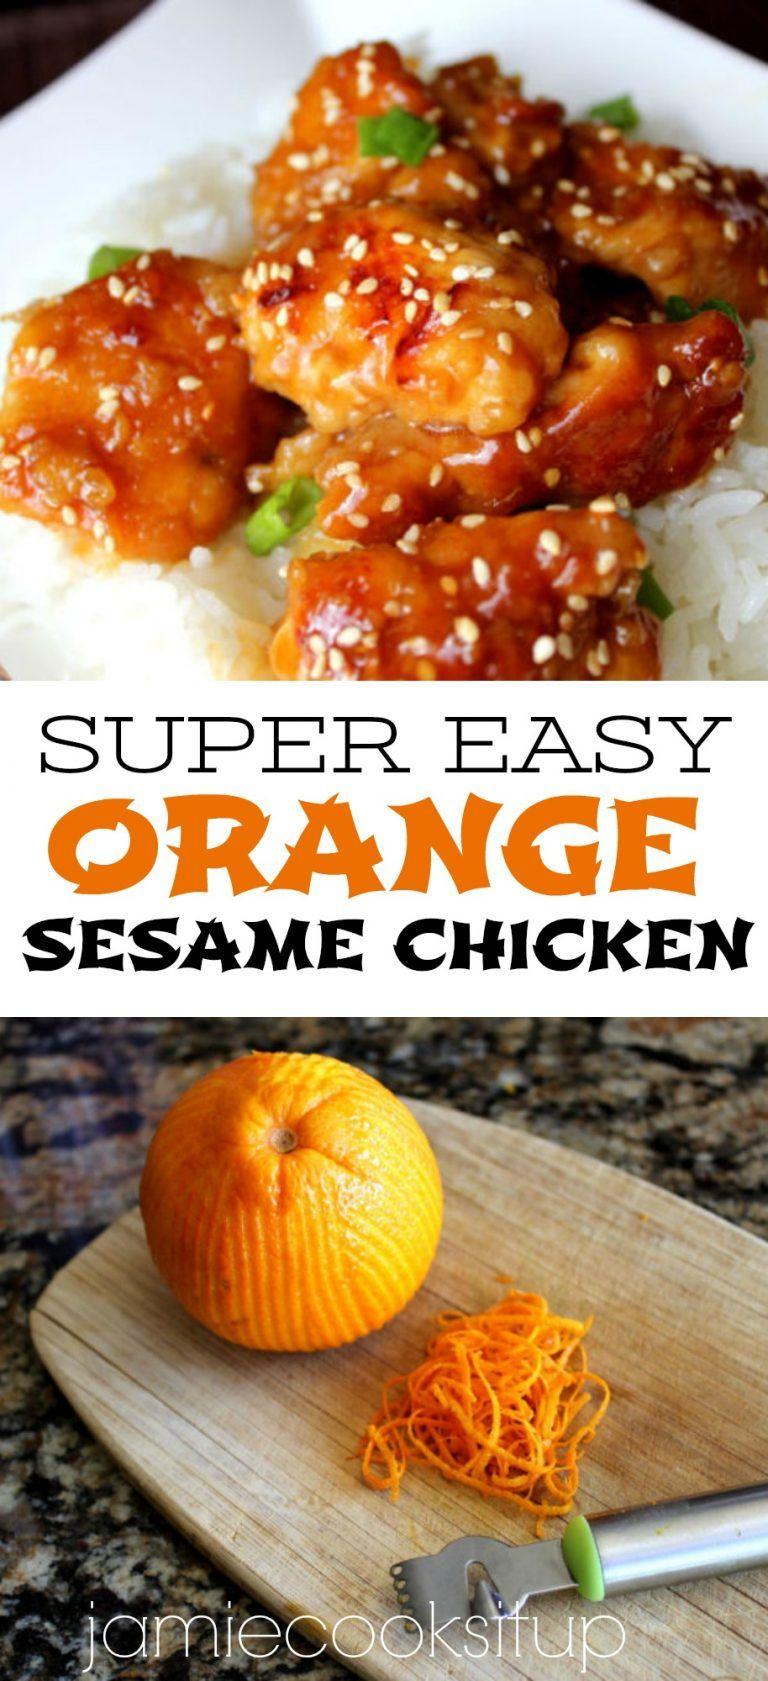 Orange Sesame Chicken #chineseorangechicken